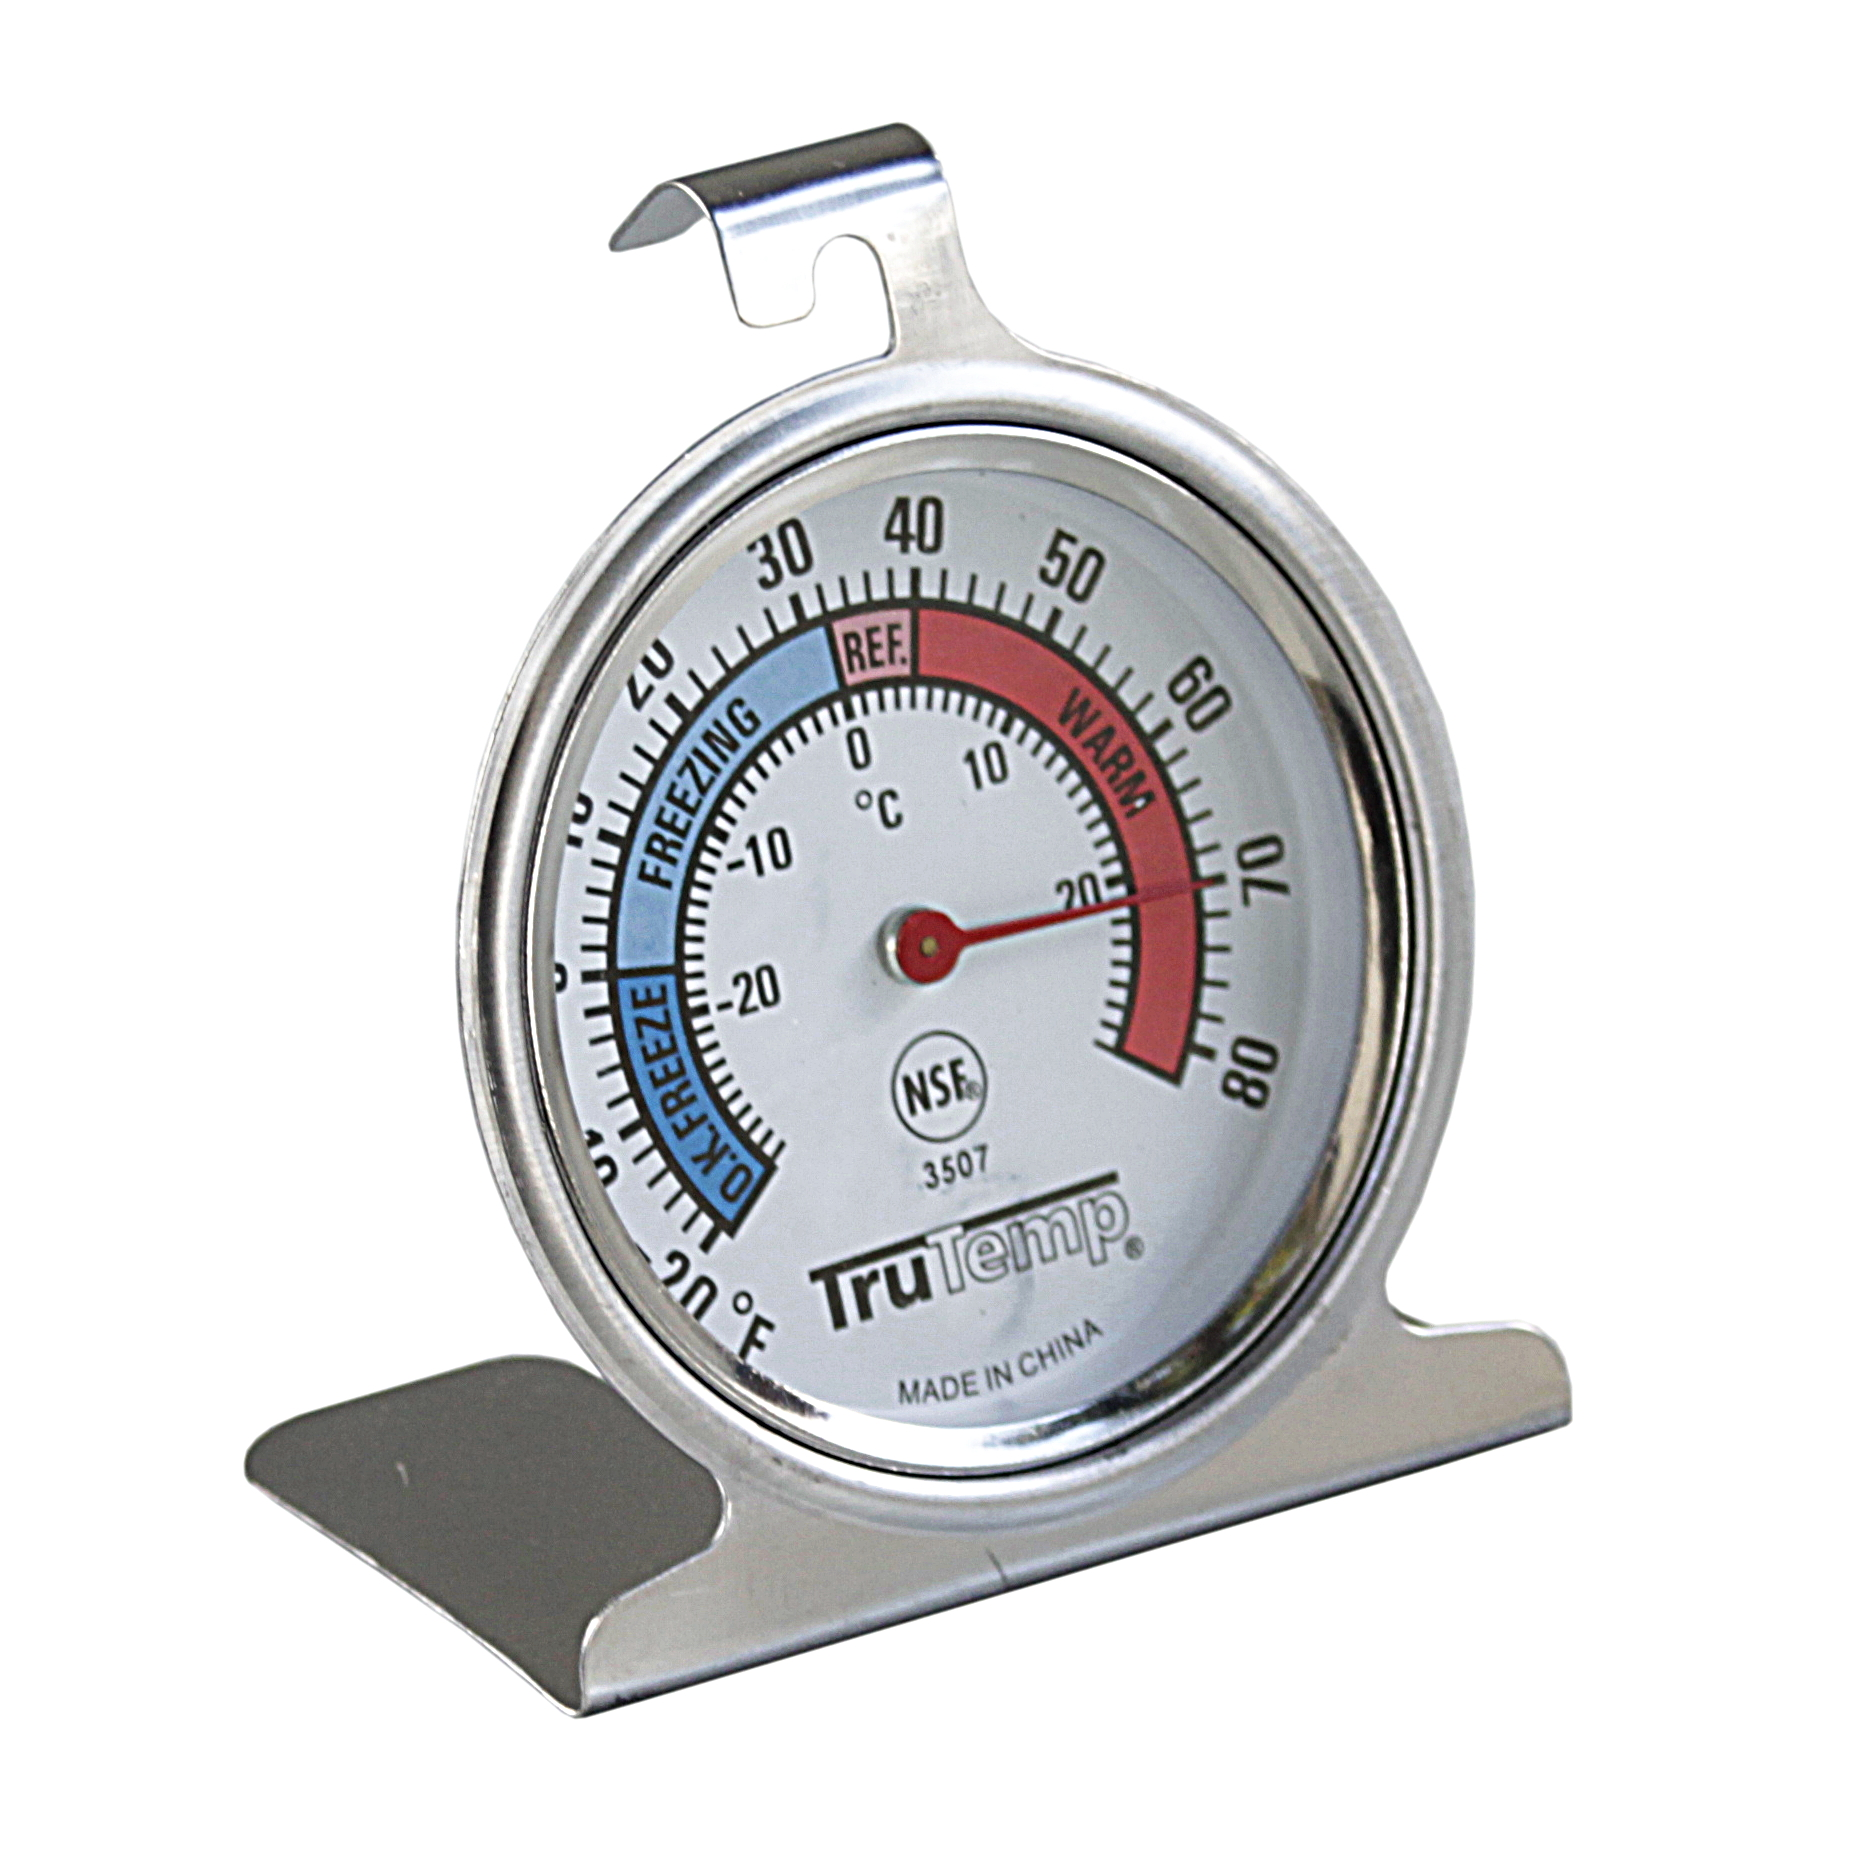 TruTemp by Taylor Silver Analog Freezer and Refrigerator Thermometer